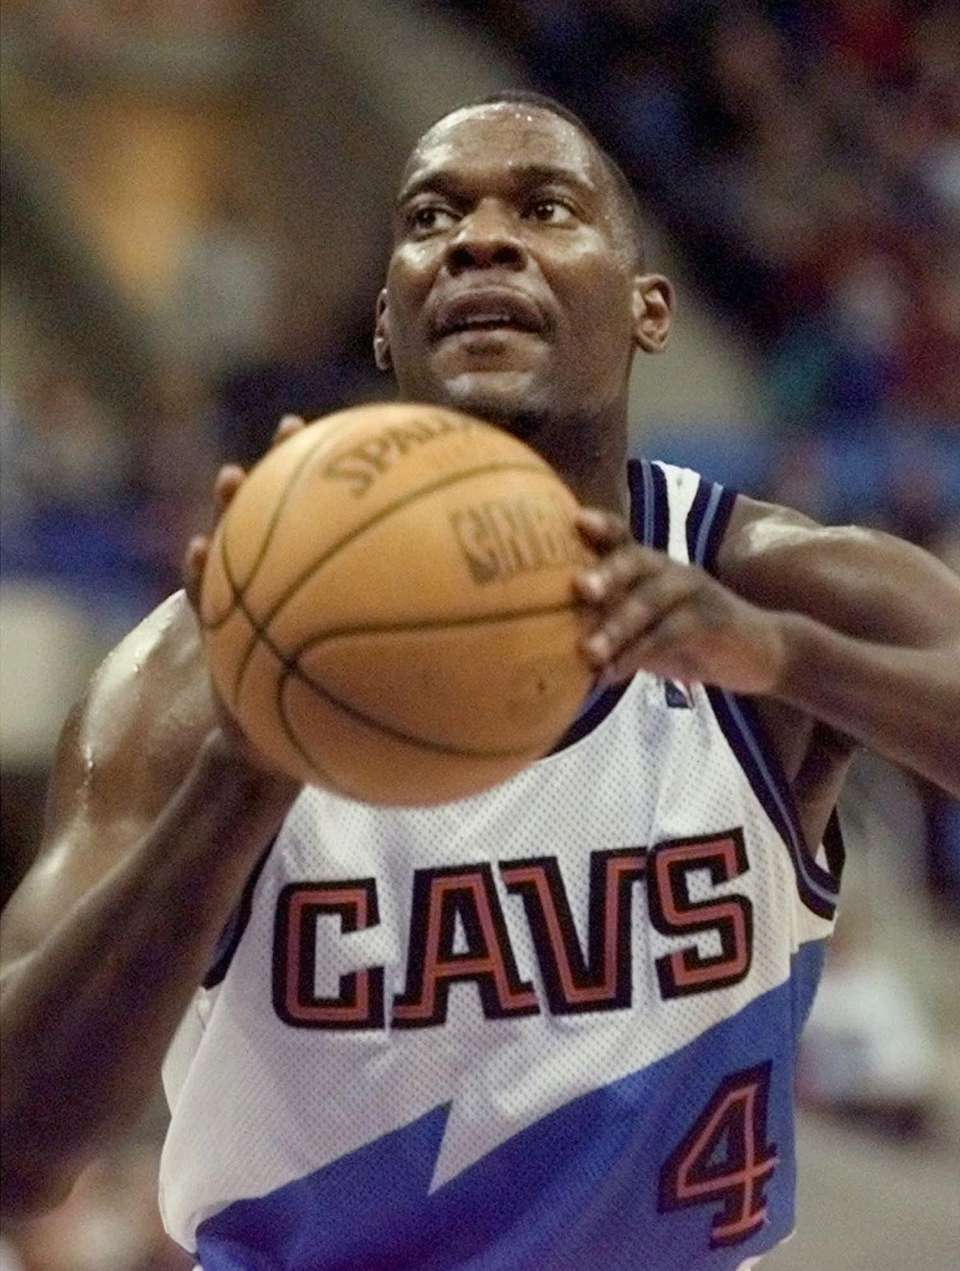 SHAWN KEMP, East Cleveland Cavaliers In his first